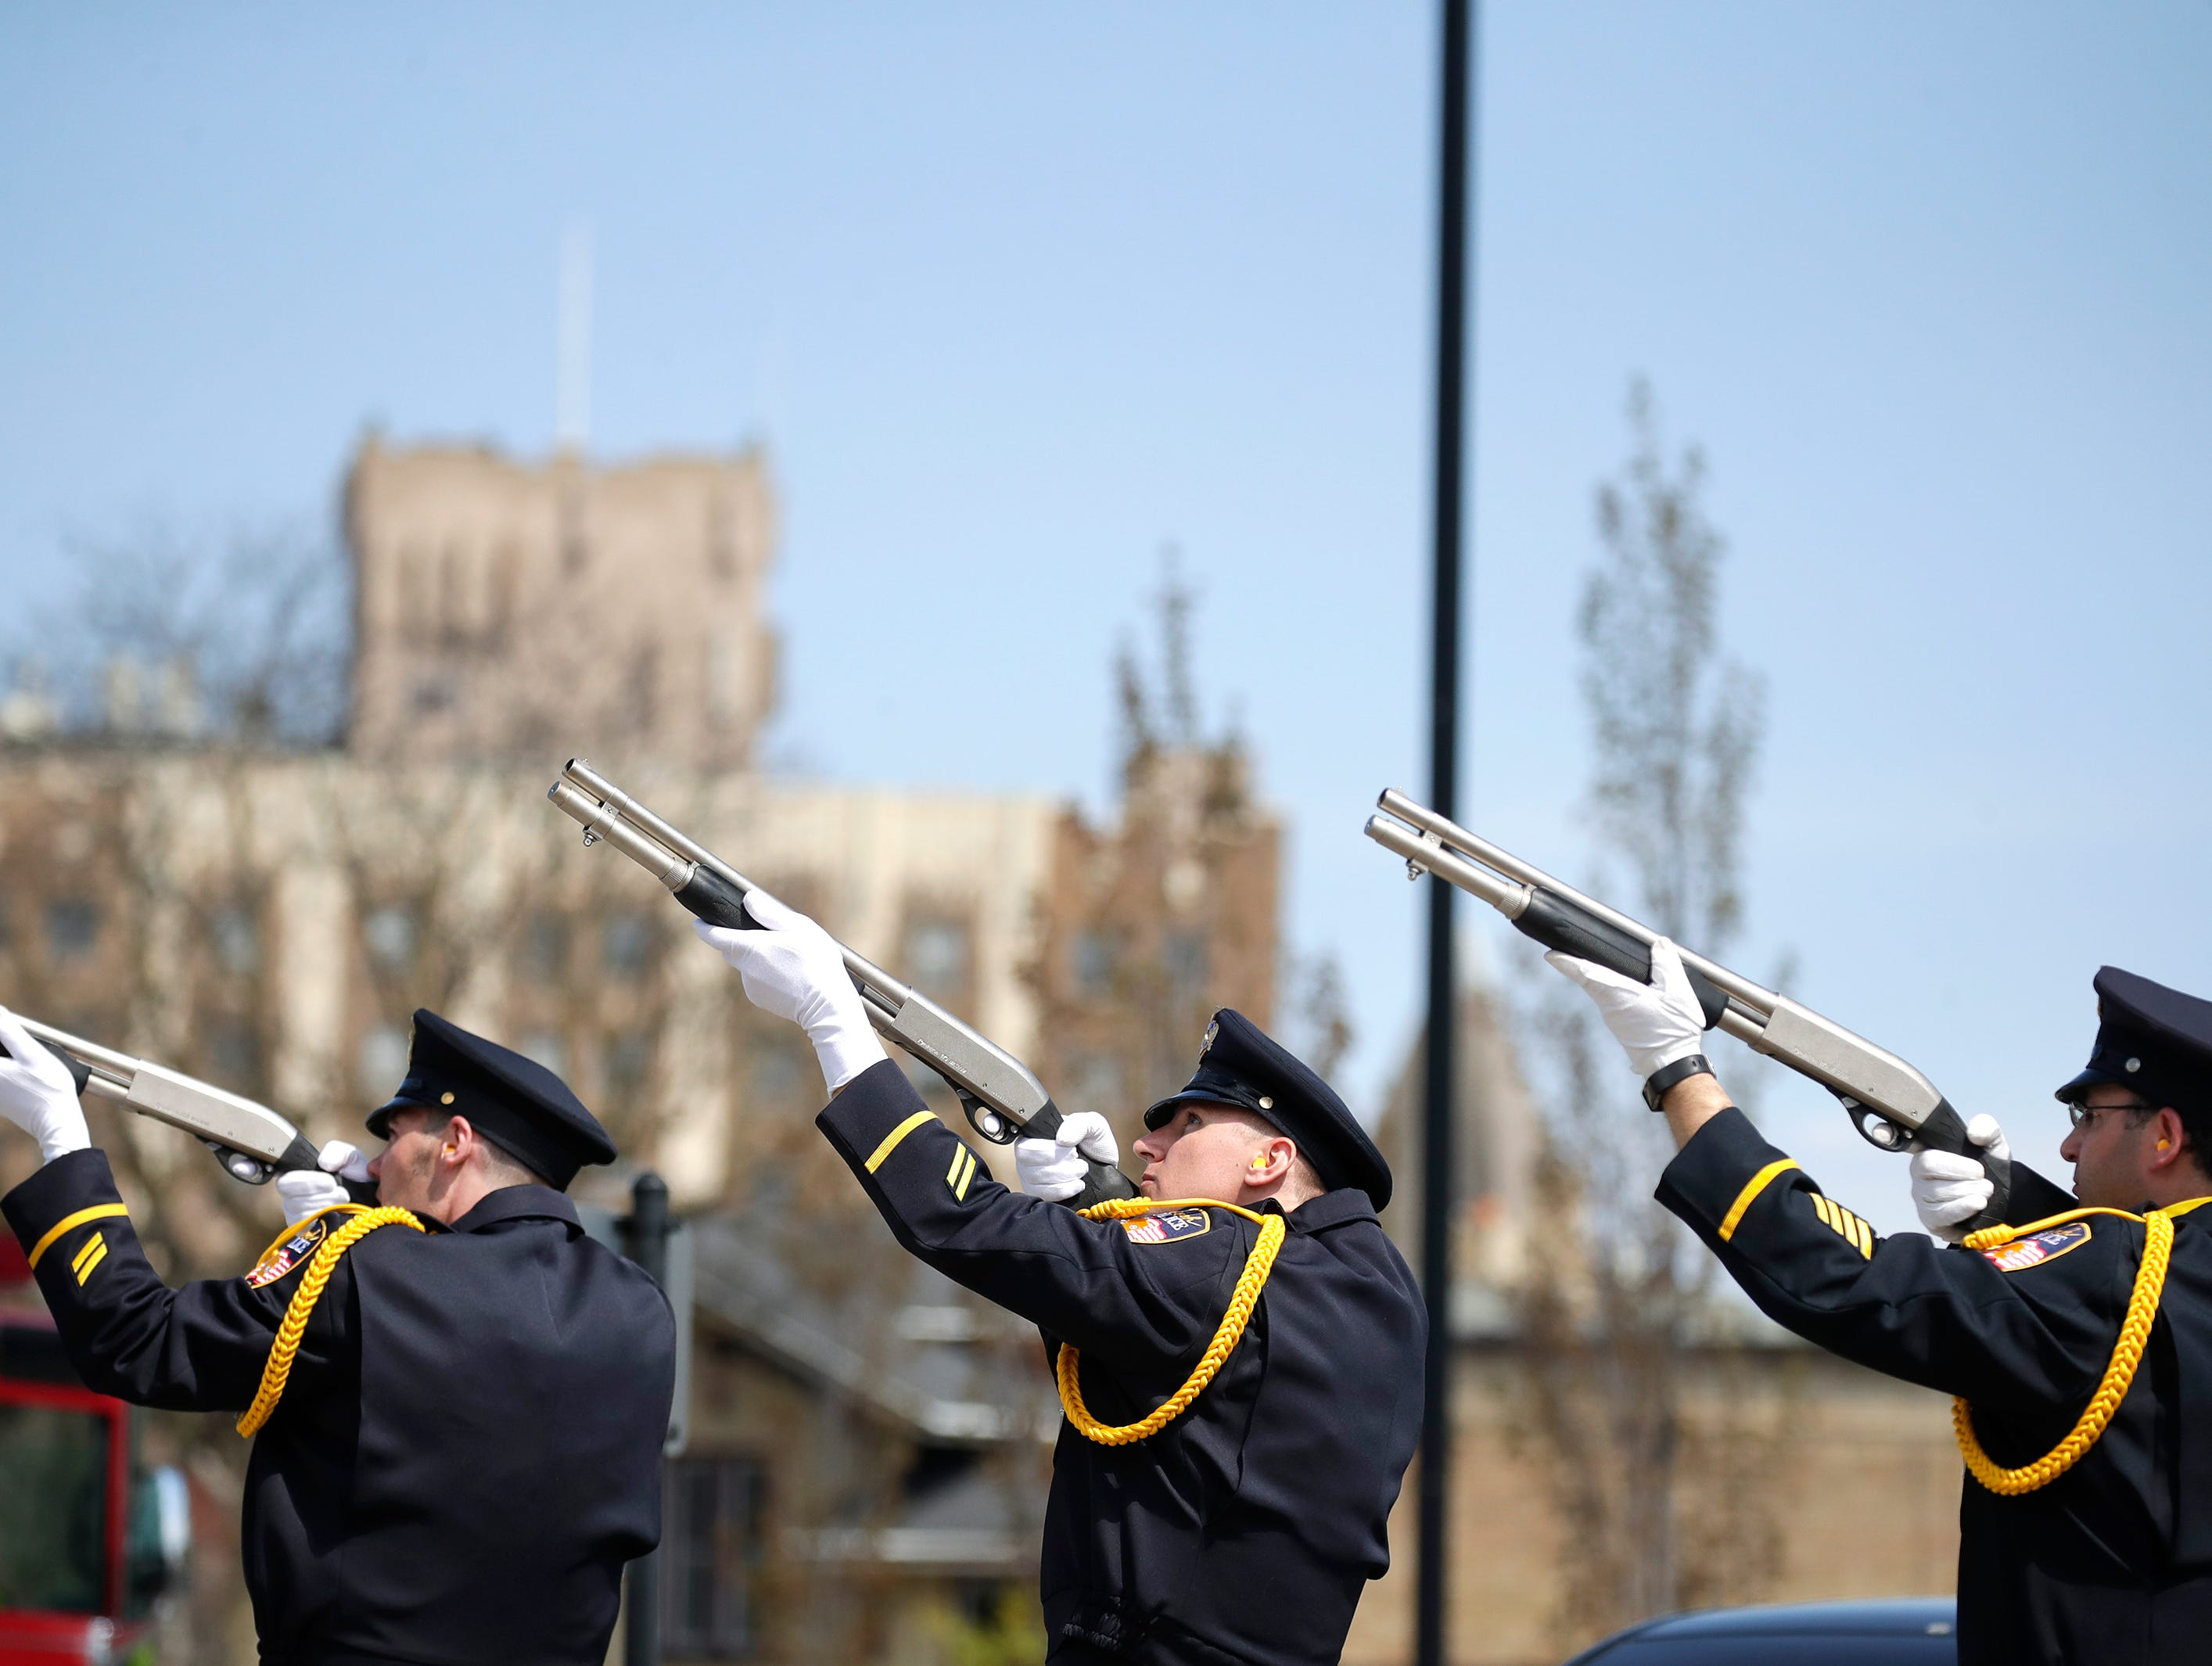 The Oshkosh Police Department Honor Guard do their traditional salute during their Law Enforcement Memorial Ceremony Wednesday, May 15, 2019, at the Oshkosh Police Department in Oshkosh, Wis. Danny Damiani/USA TODAY NETWORK-Wisconsin